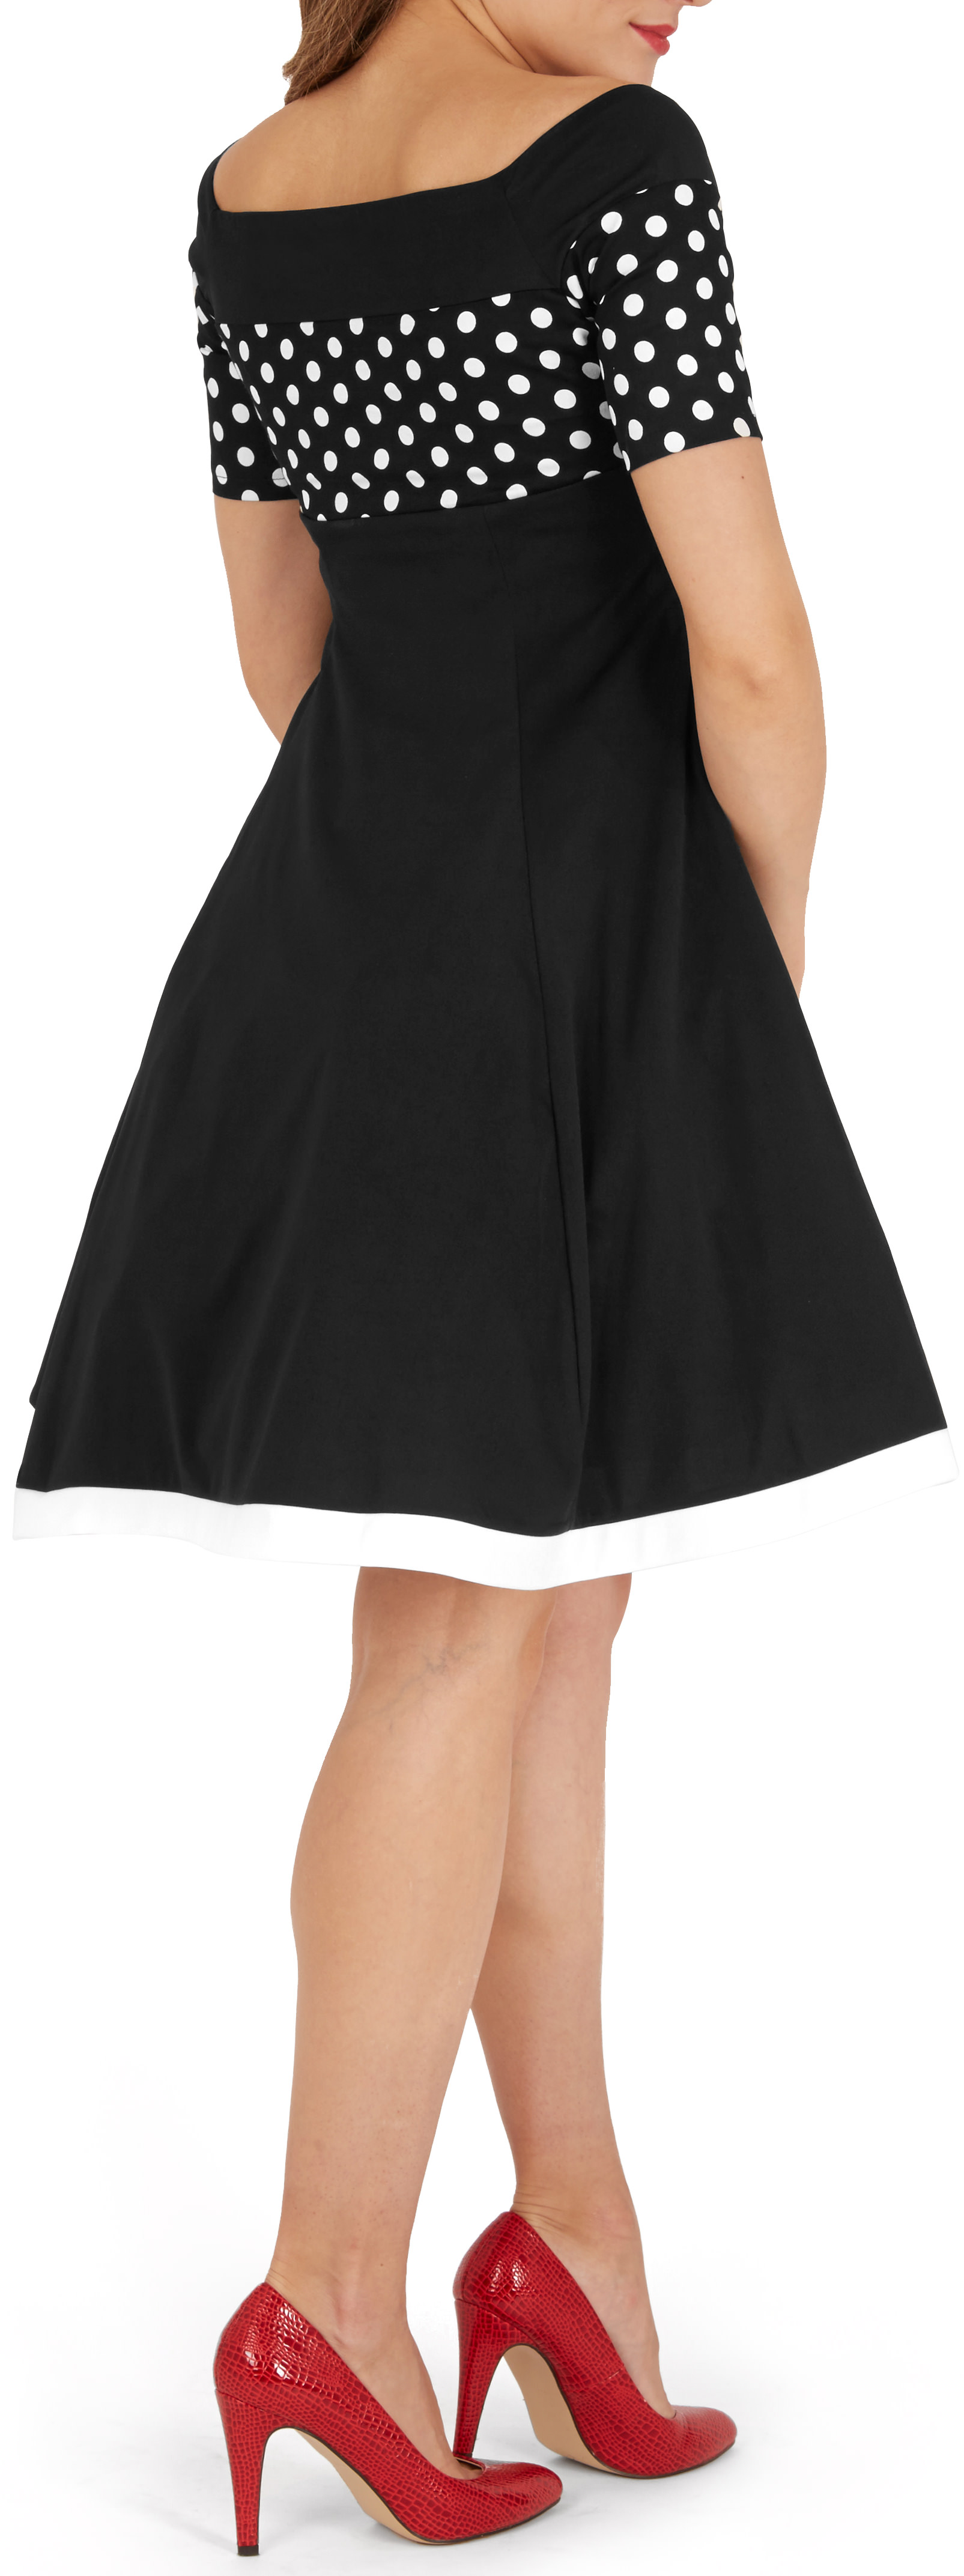 Classic Vintage /'Penny/' Polka Dot Rockabilly 50/'s Swing Prom Pinup Dress